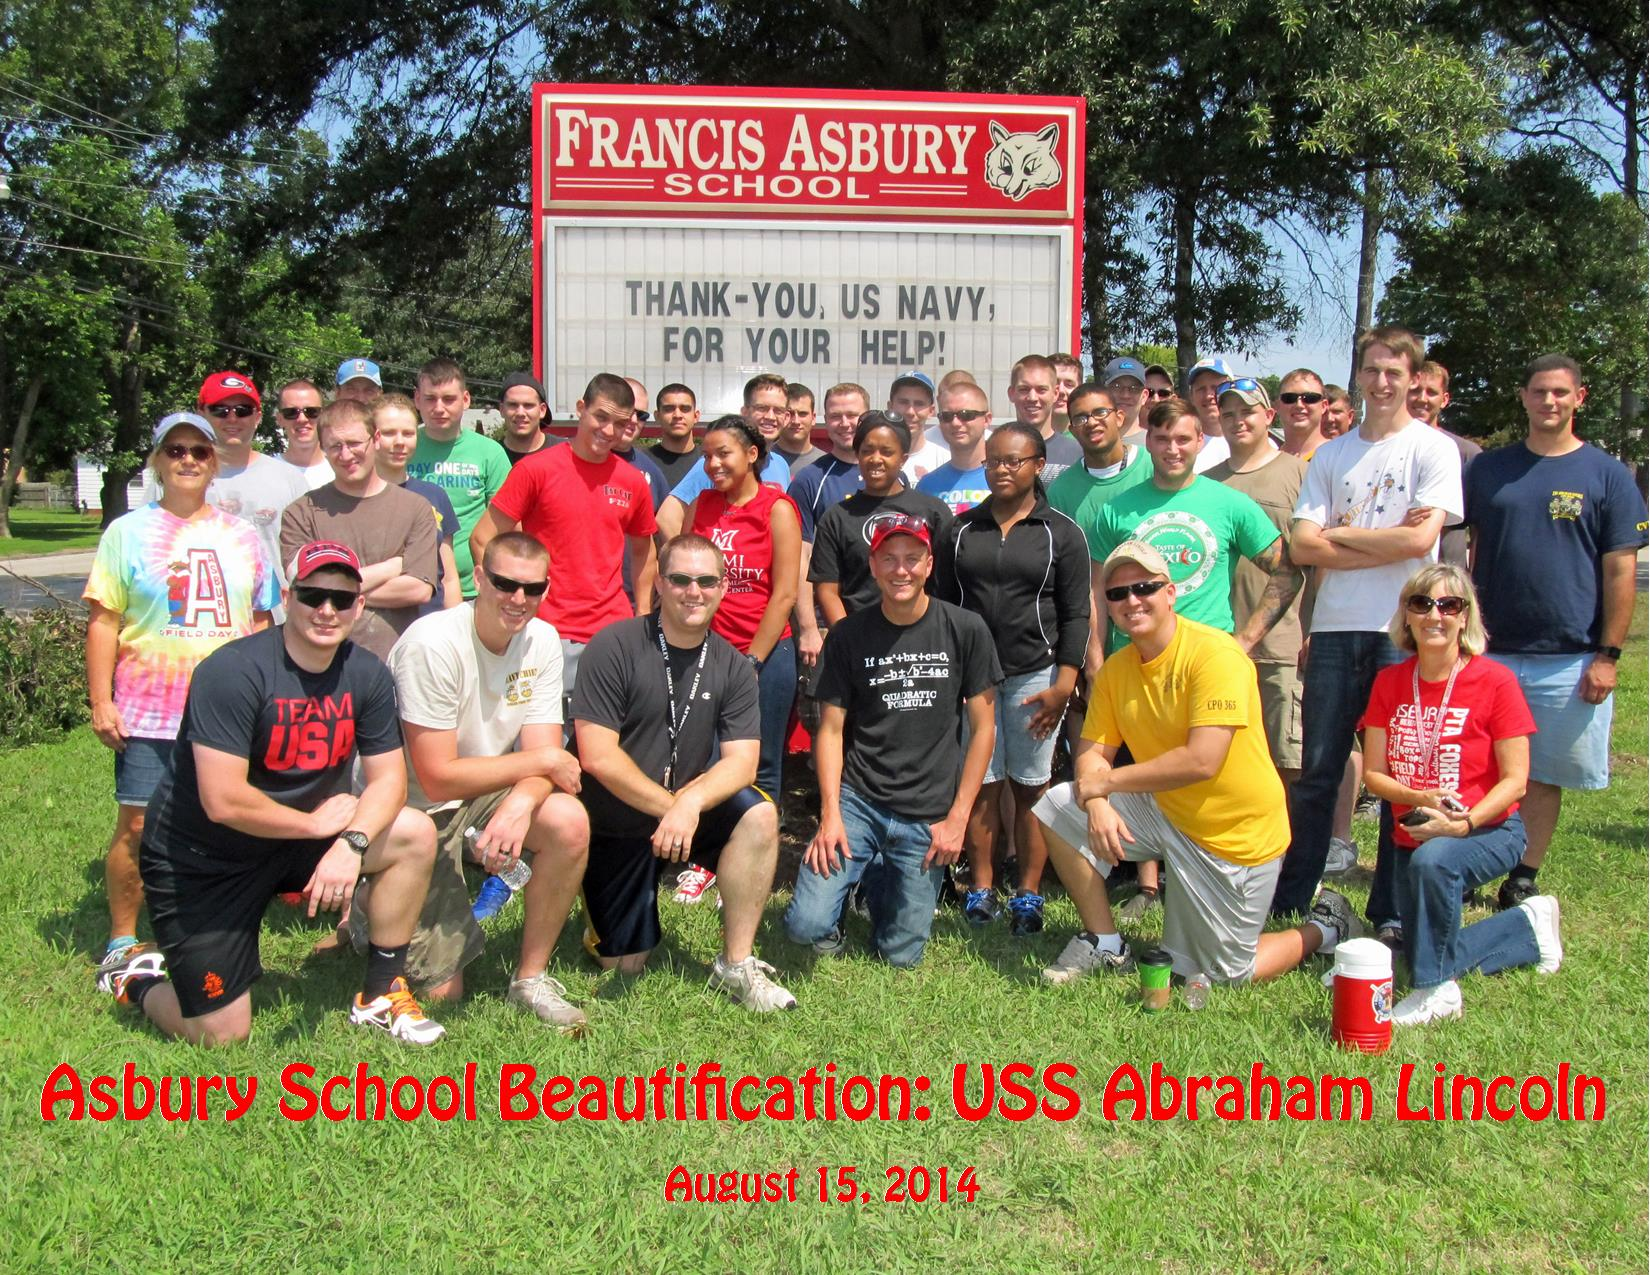 8-15-14 Asbury Beautification USS Abraham Lincoln